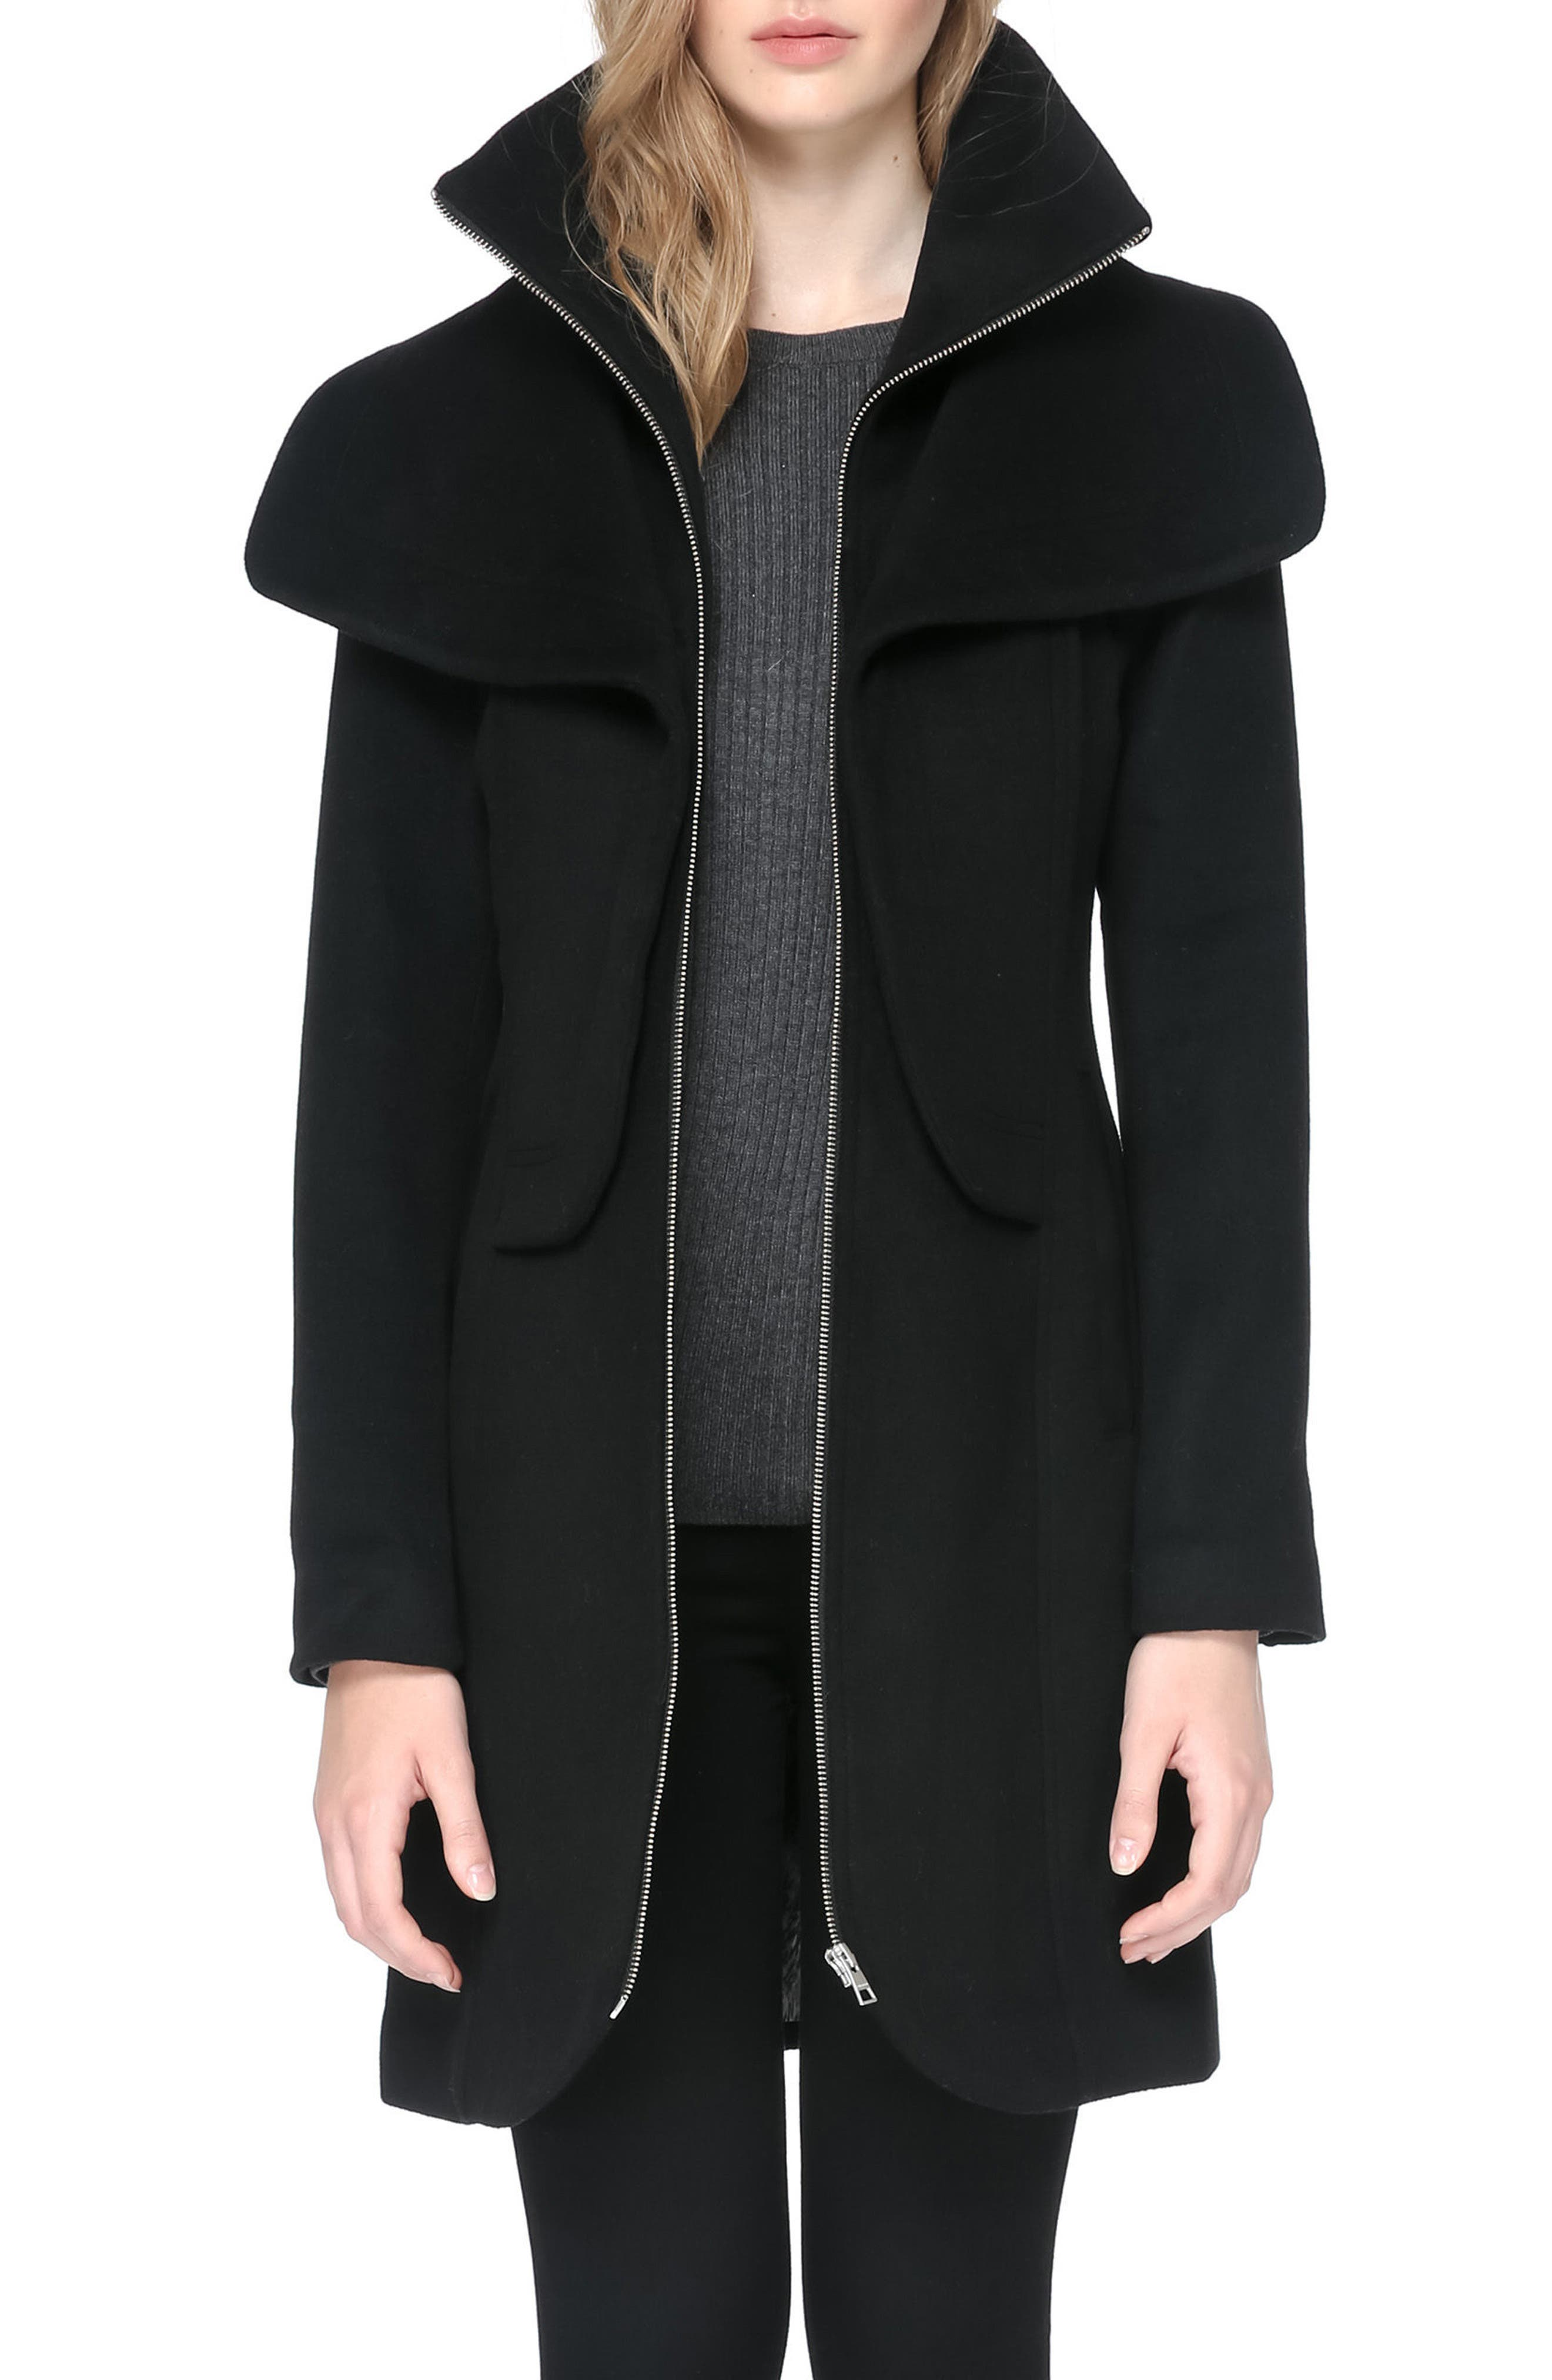 Alternate Image 1 Selected - Soia & Kyo Hooded Trench